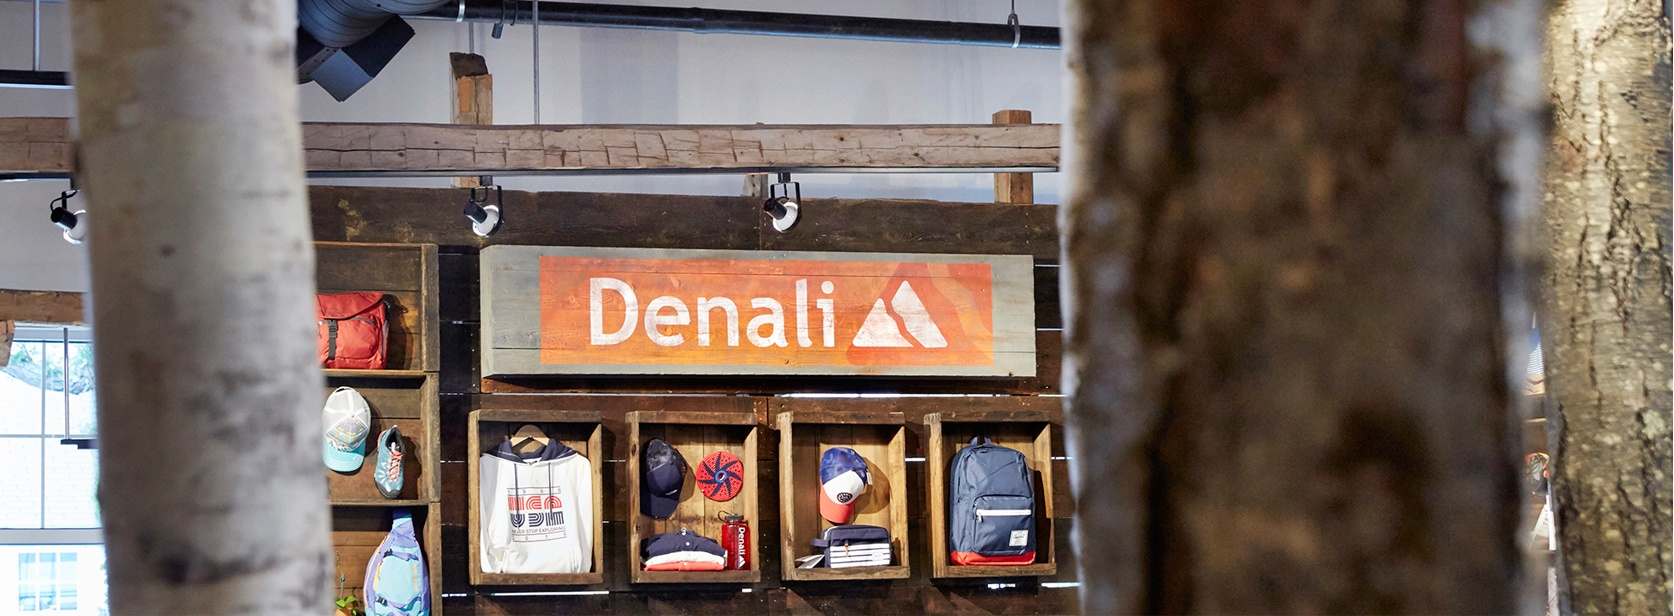 Denali Outdoor Lifestyle Store | Retail Architecture and Design